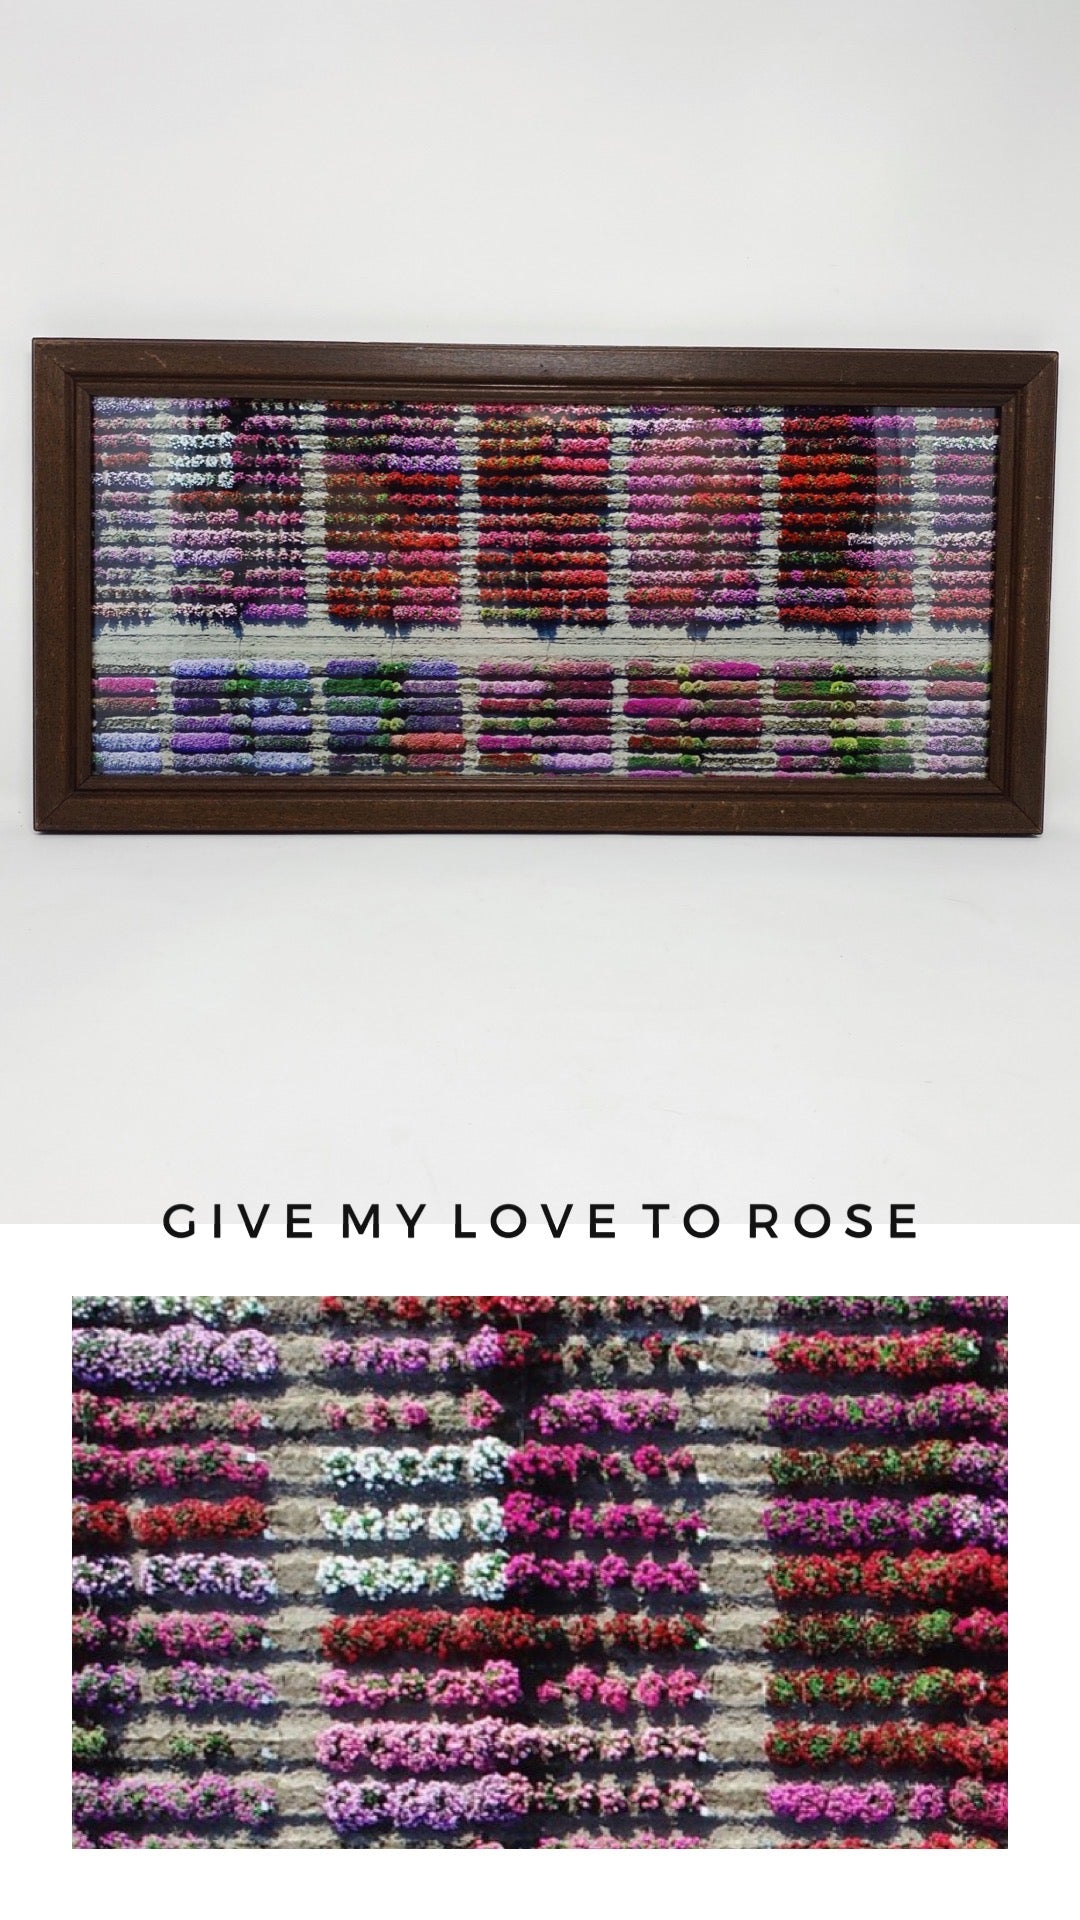 FRAMED 'GIVE MY LOVE TO ROSE' PRINT